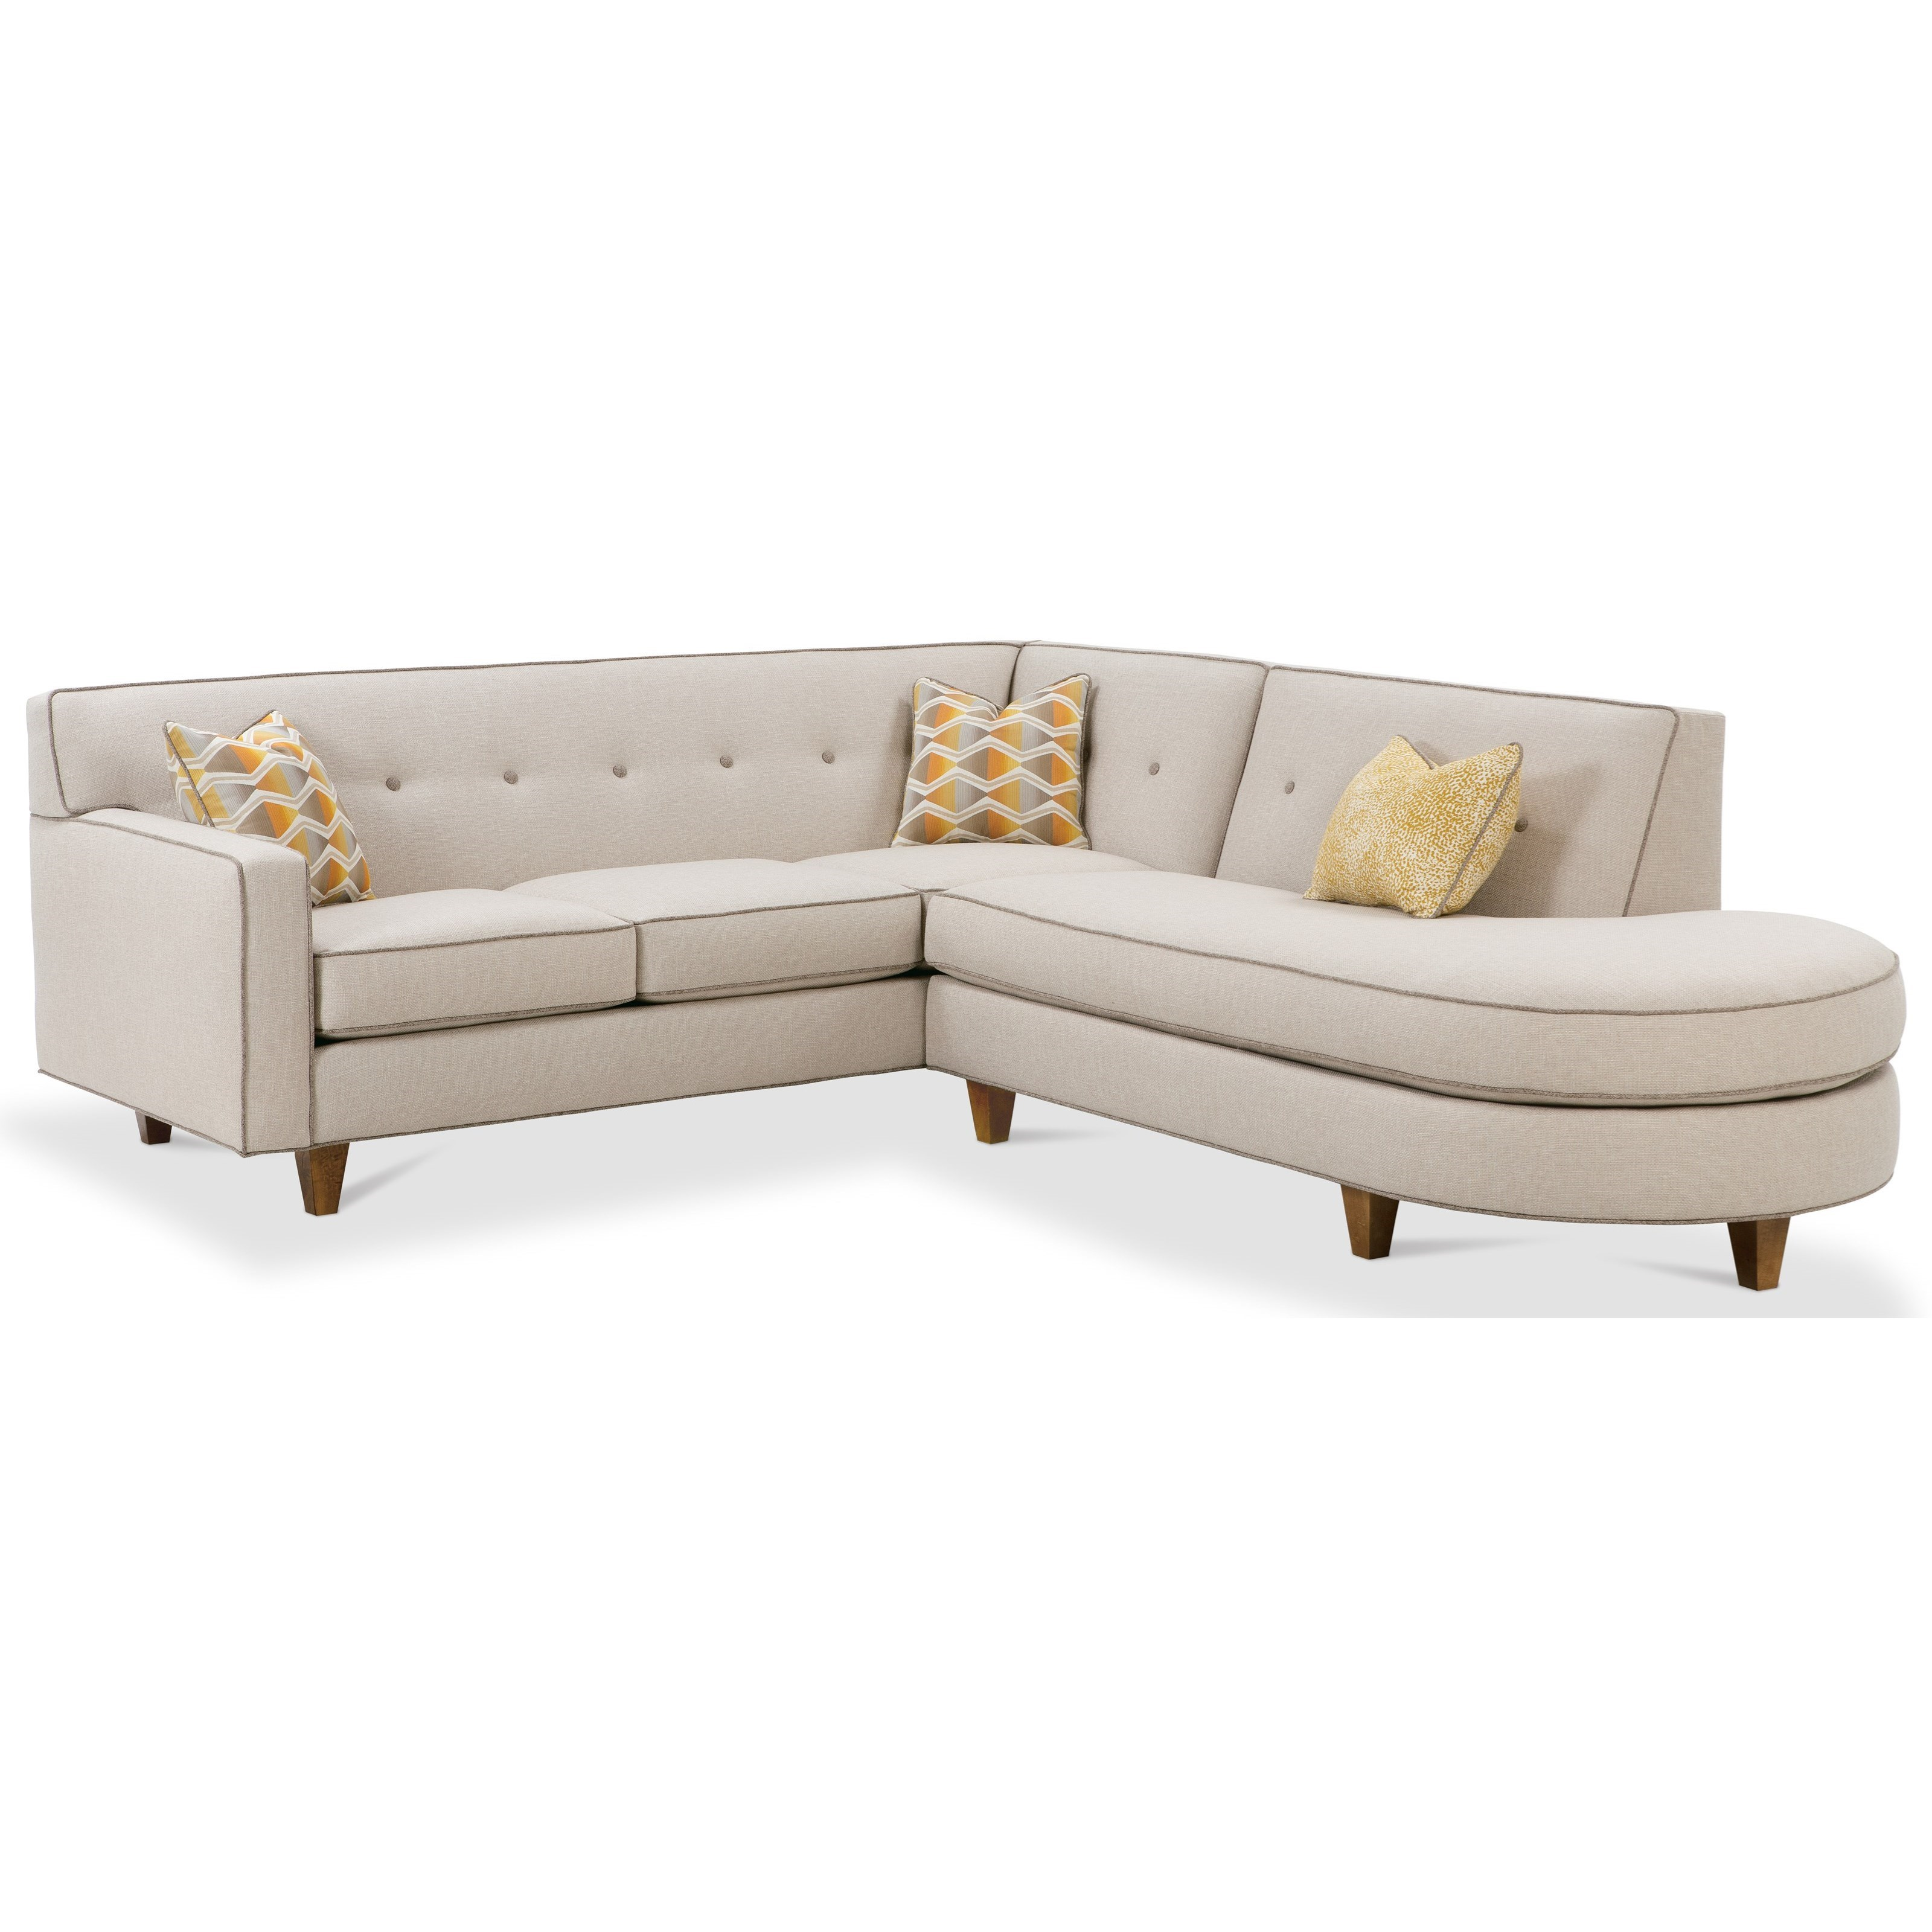 Dorset Contemporary 2 Piece Sectional Sofa by Rowe at Saugerties Furniture Mart